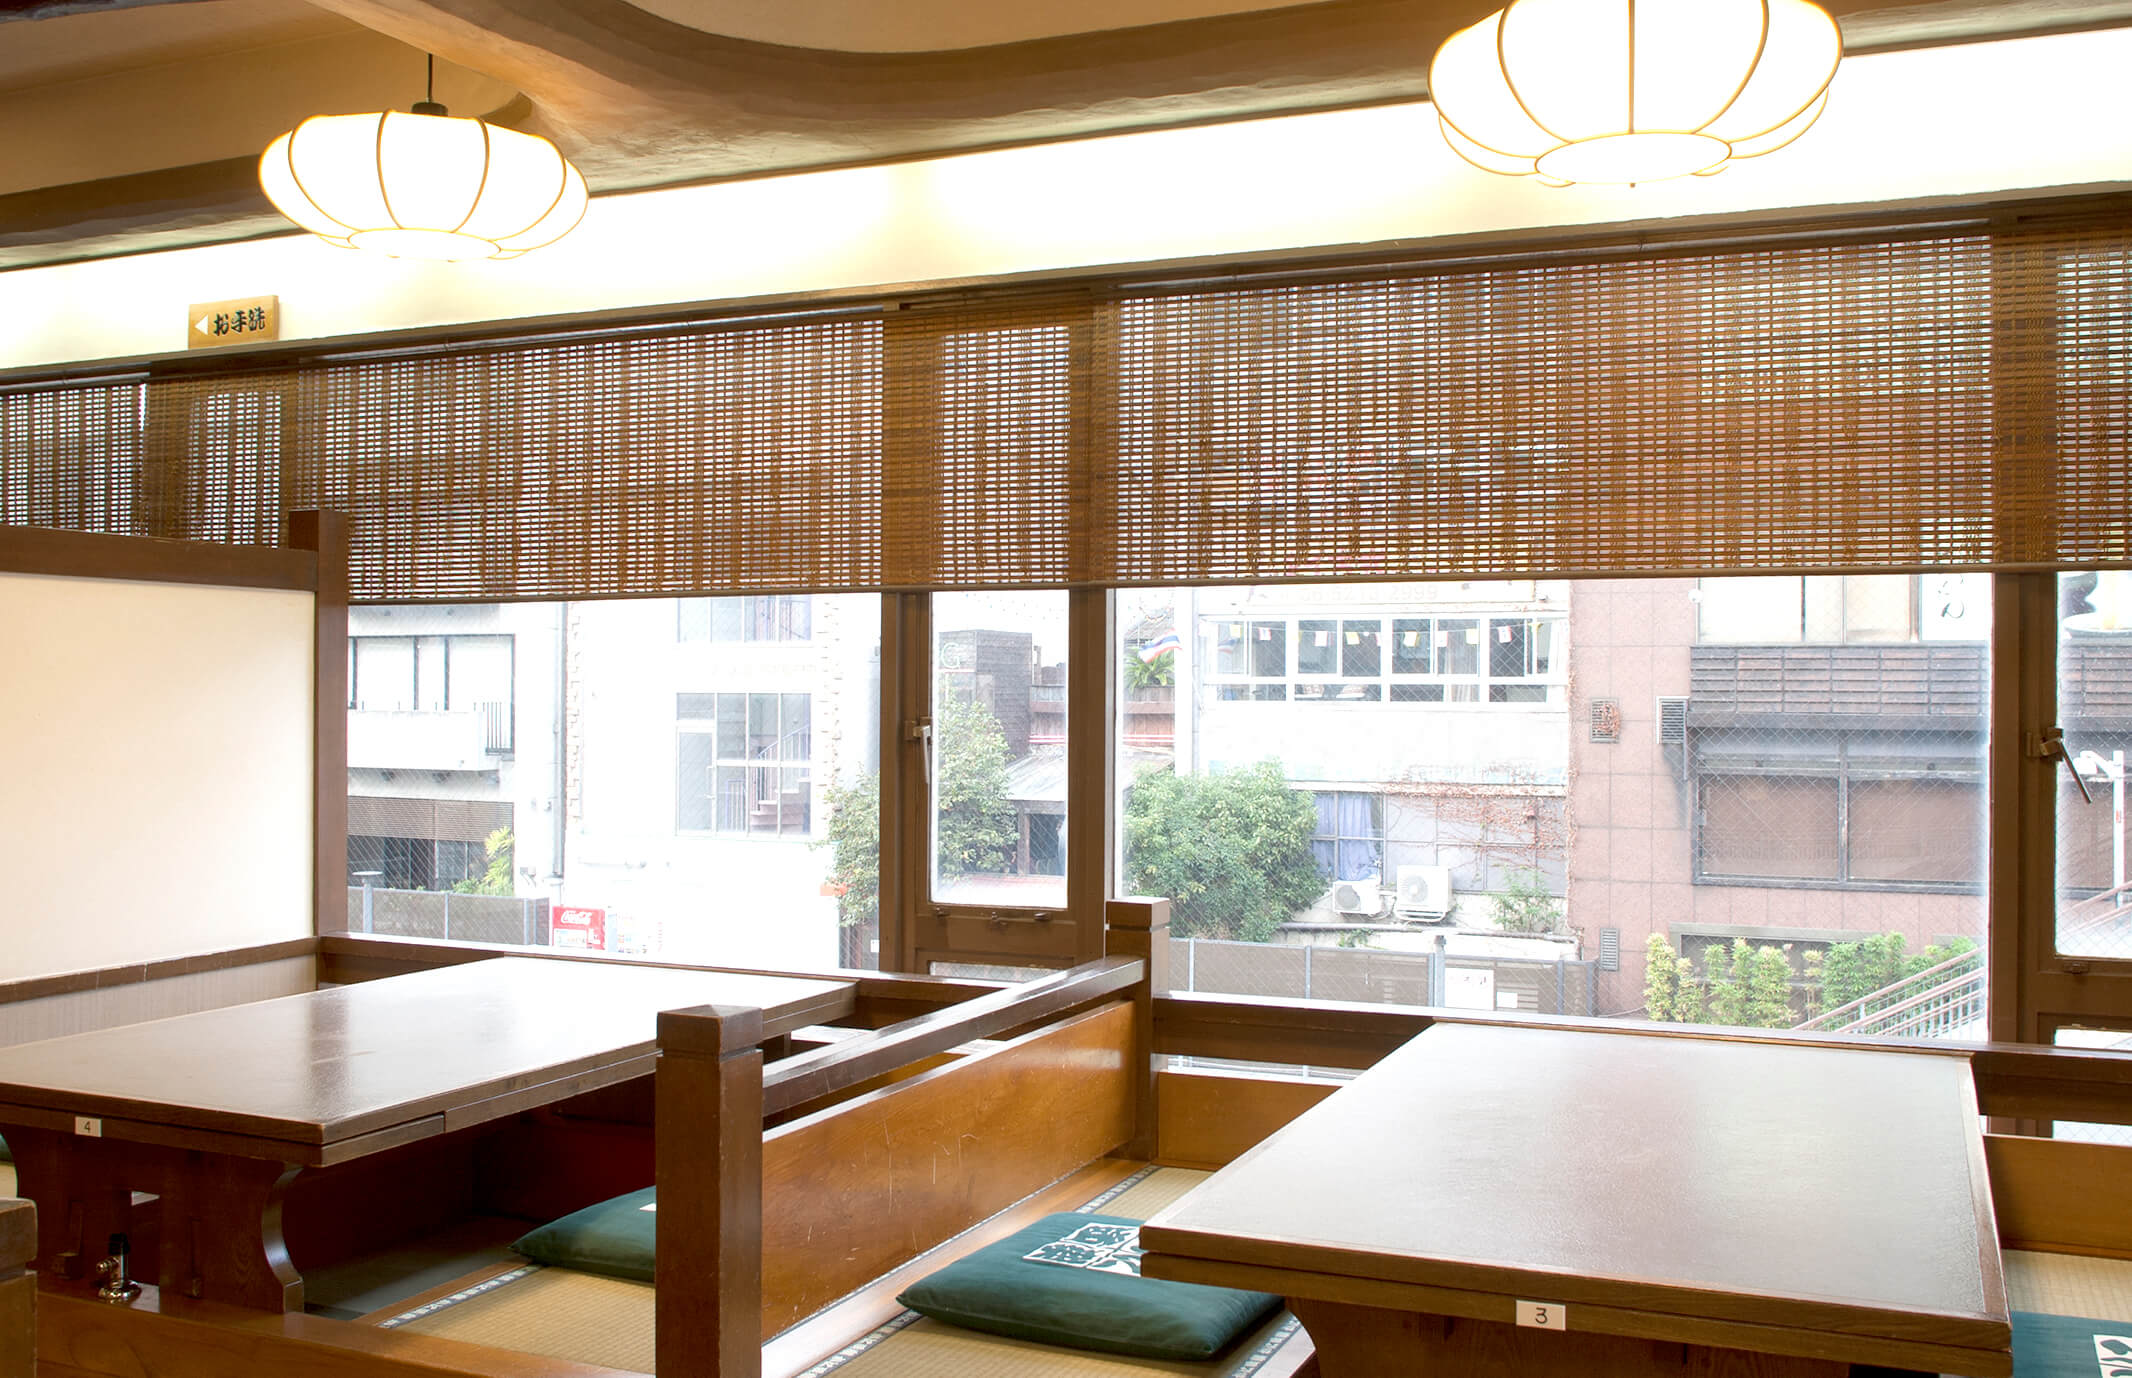 Room (dig seat) gives up smoking in Dotombori higashimise(East) branch introspectiveness -